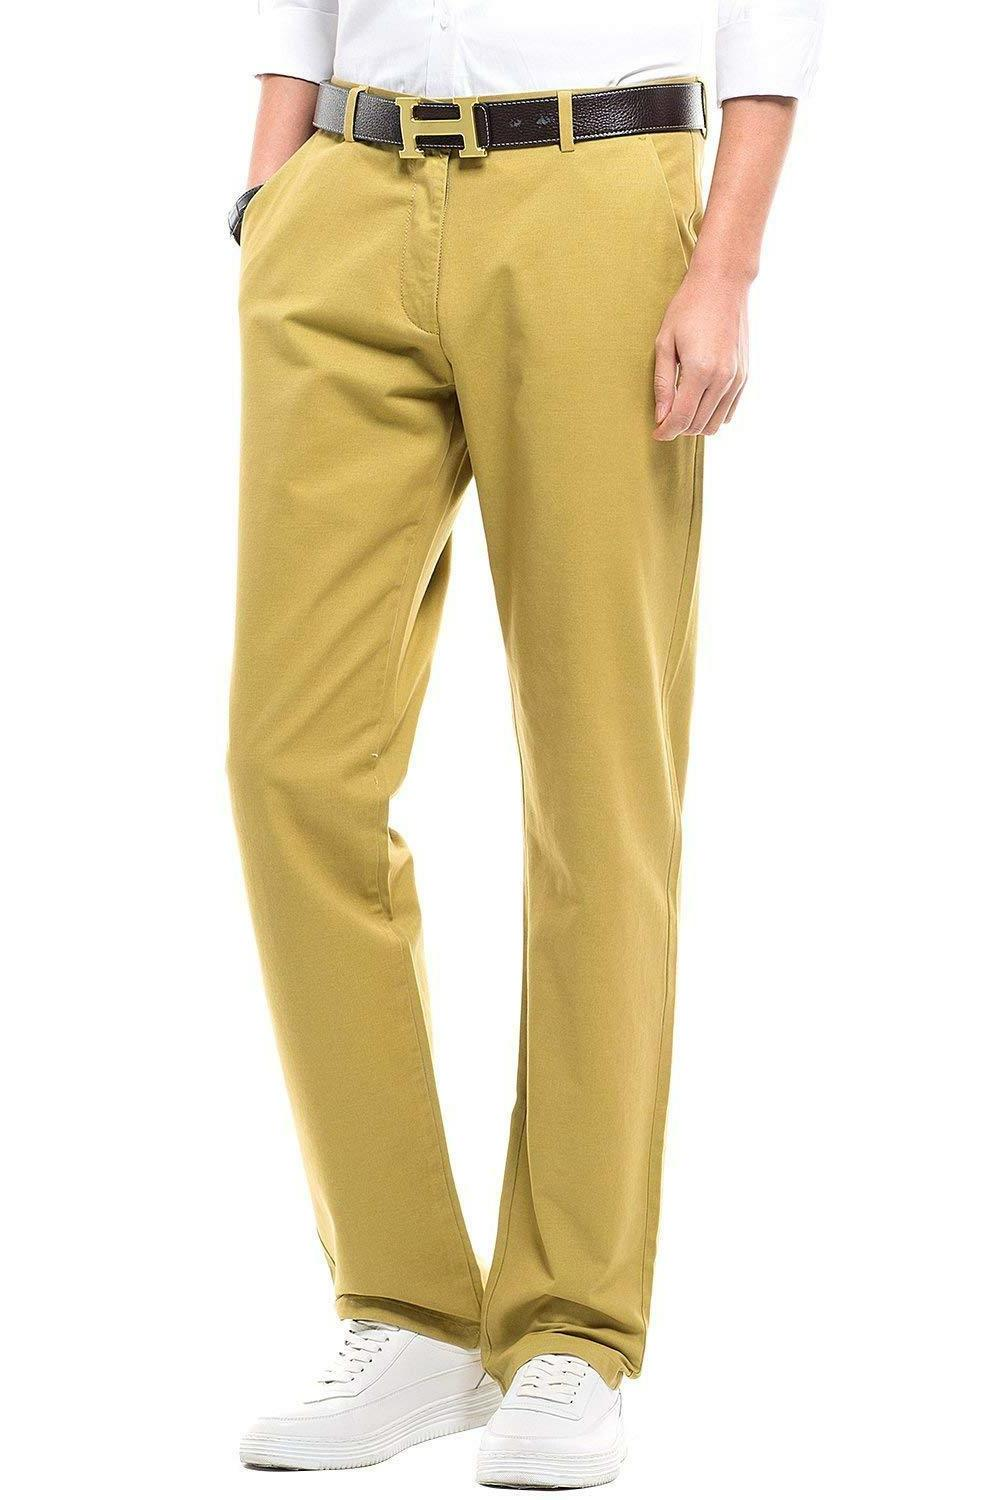 INFLATION Men's Stretchy Straight Fit Casual Pants,100% Cott